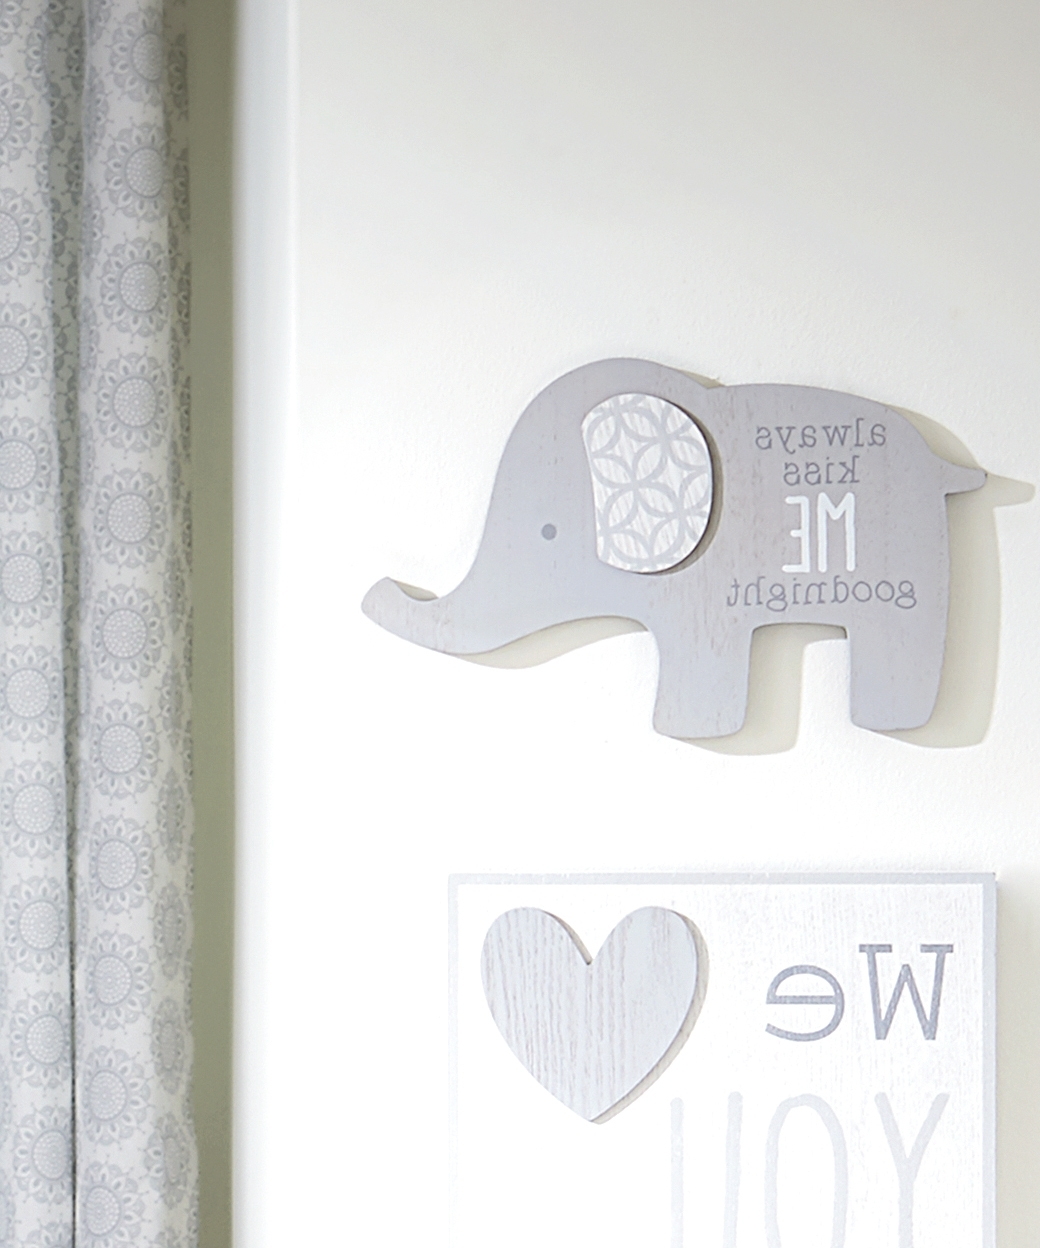 Wendy With Regard To Well Known Elephant Wall Art For Nursery (View 14 of 15)